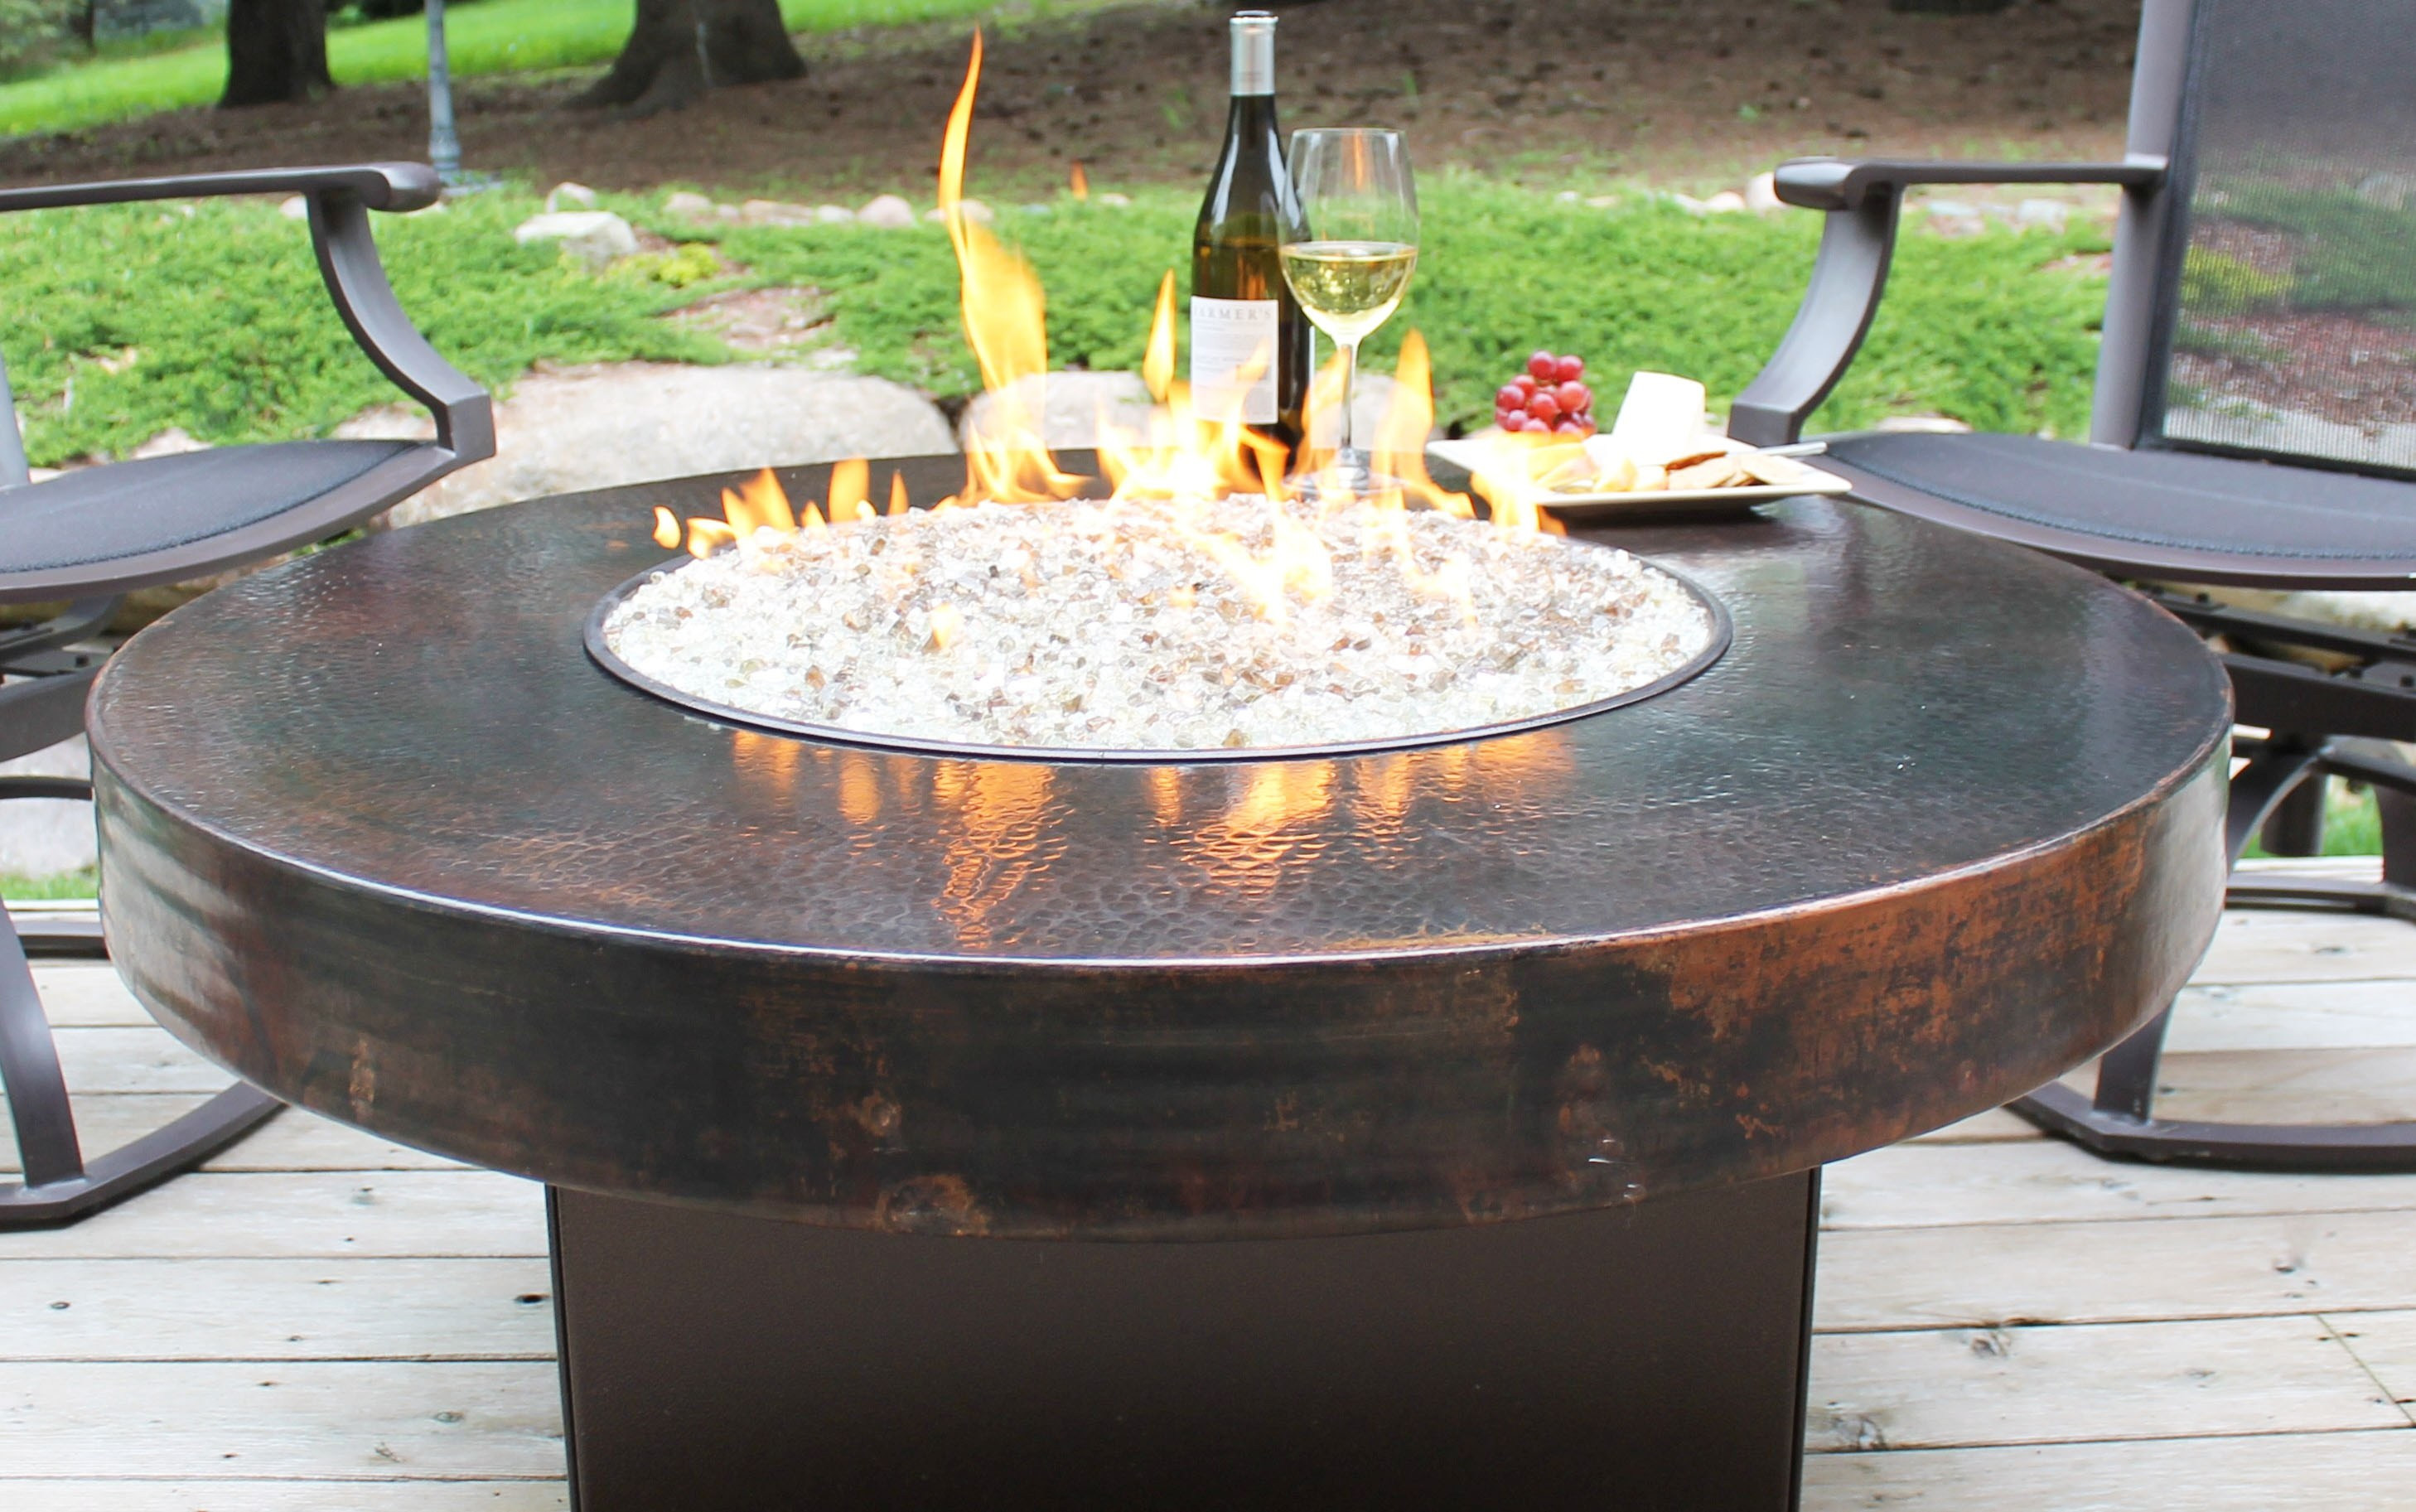 Best ideas about DIY Propane Fire Pit Kit . Save or Pin How to Make Tabletop Fire Pit Kit DIY Now.